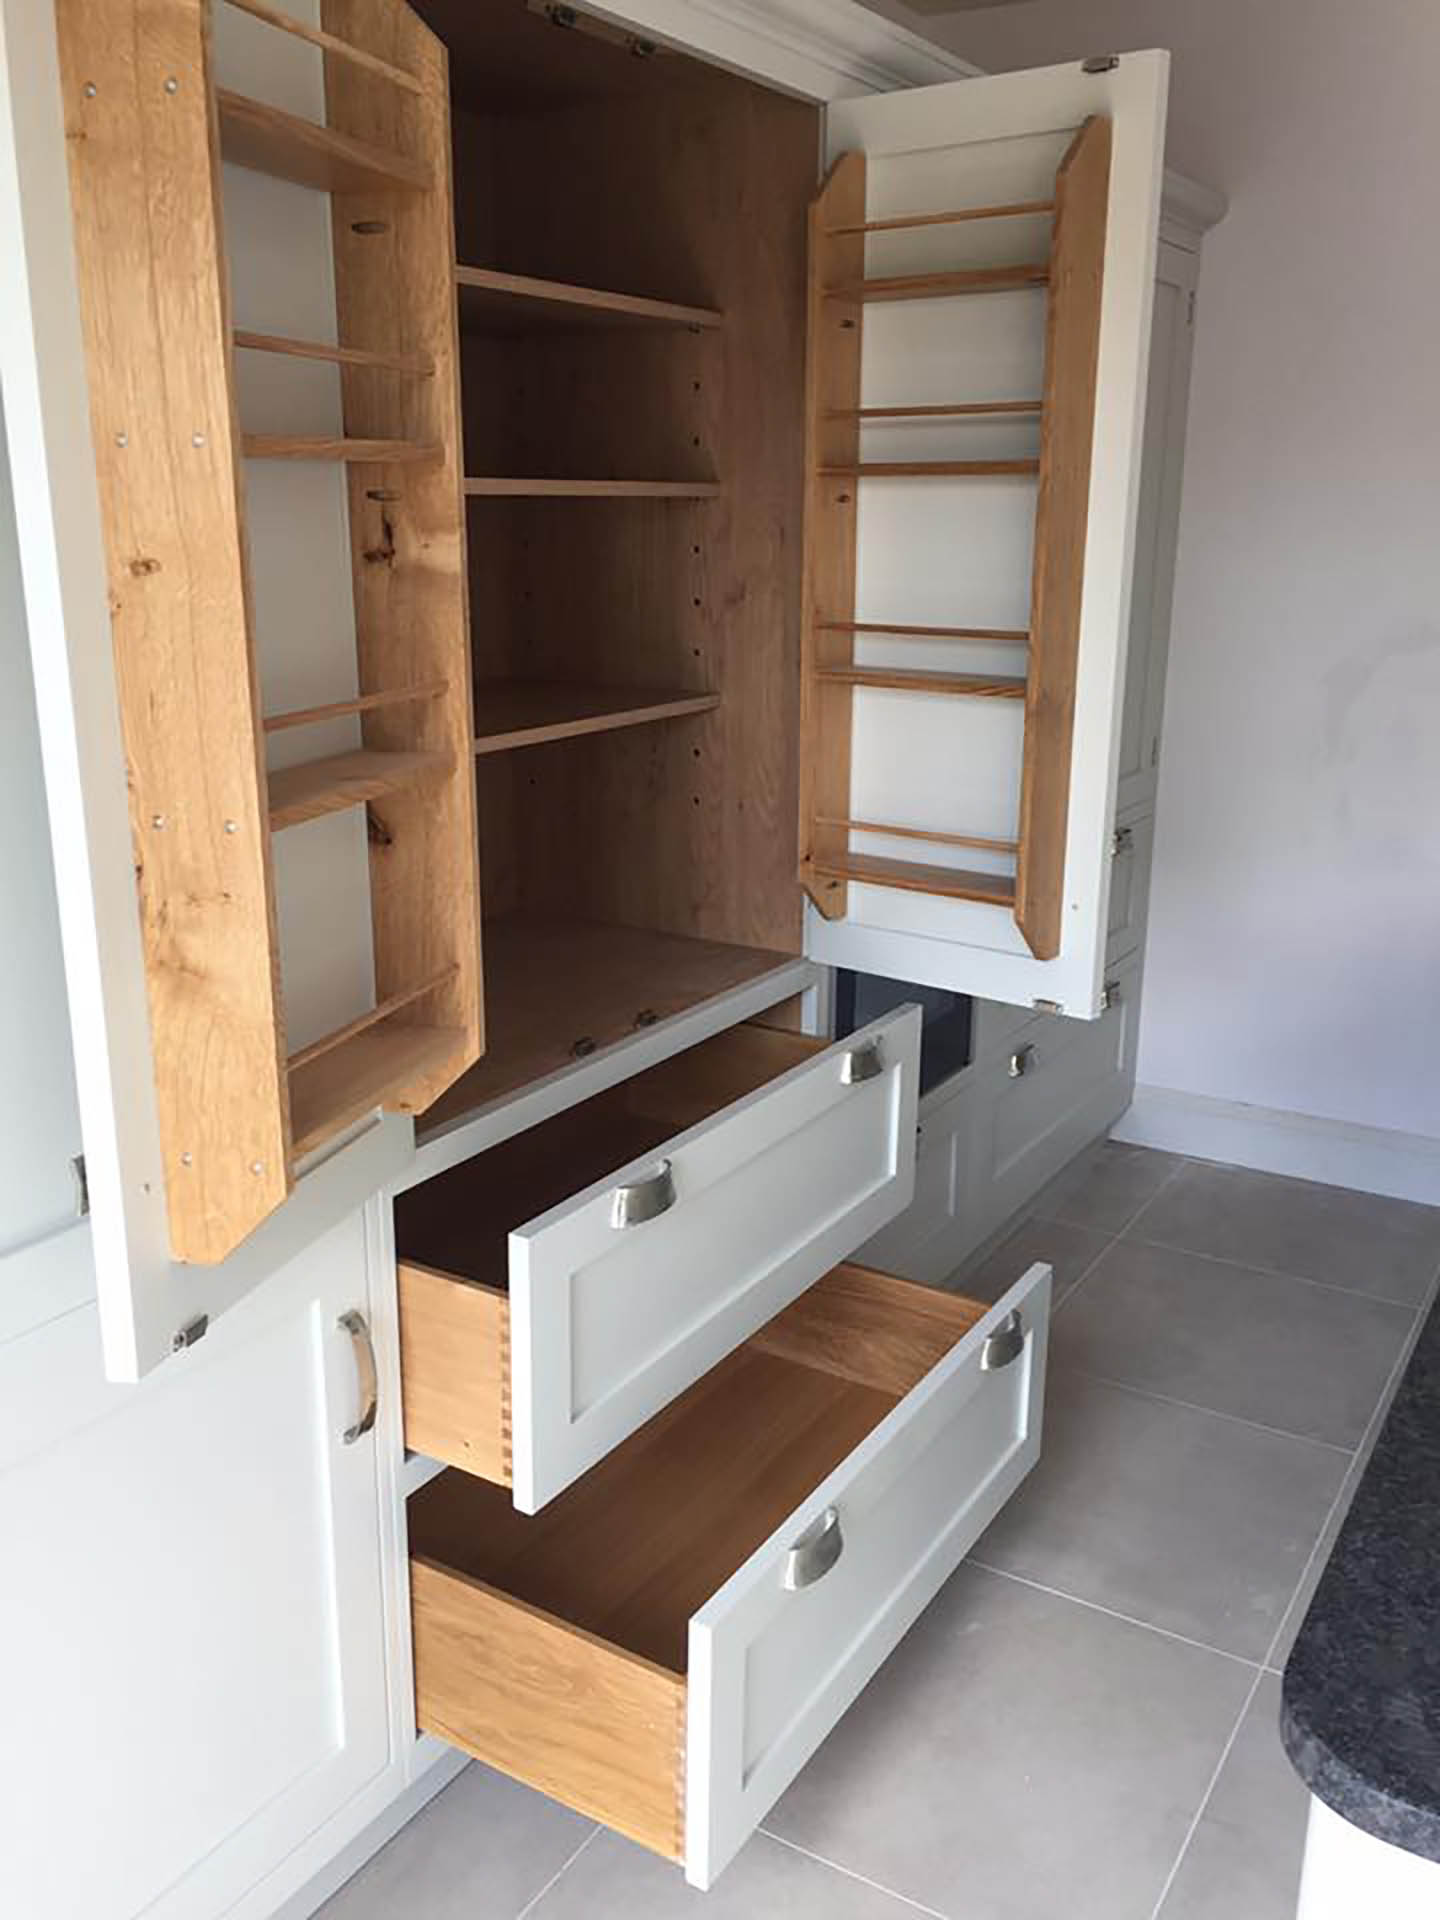 A kitchen pantry which has it's doors and drawers opened